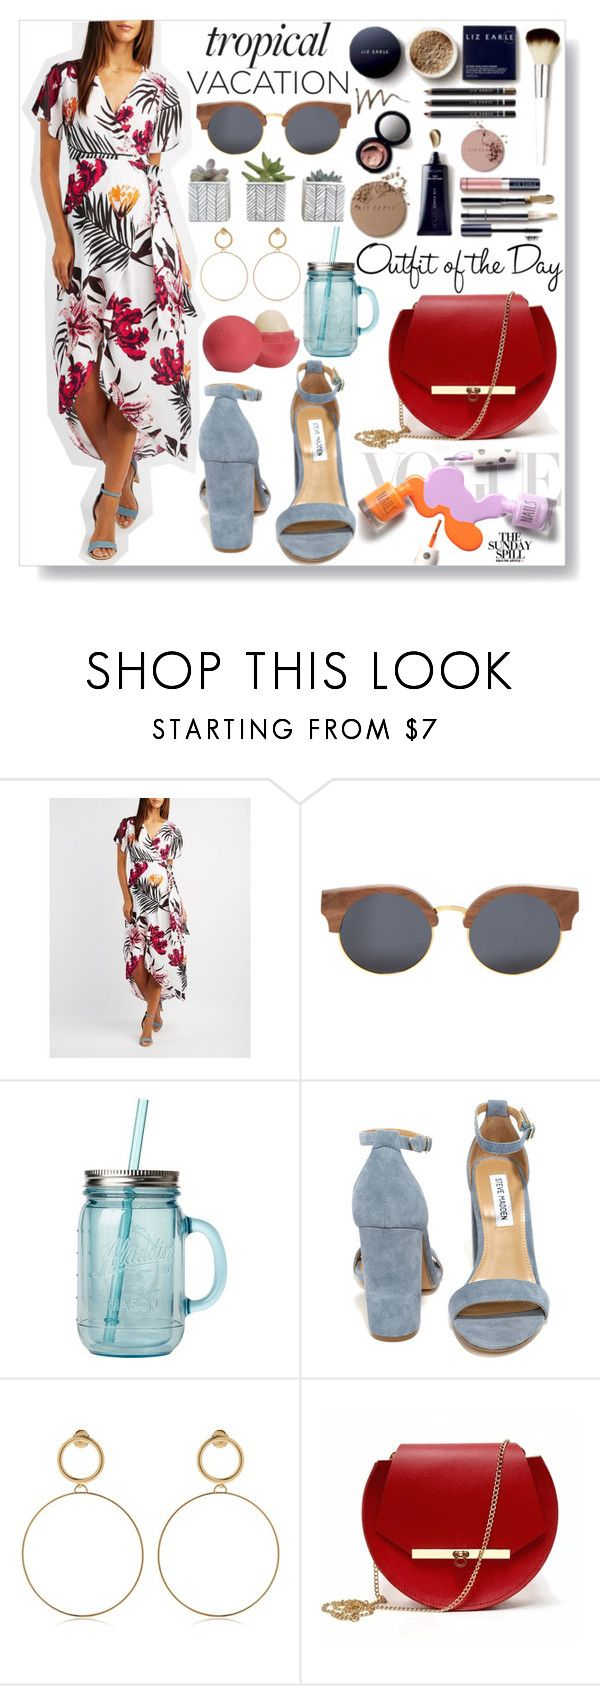 """""""#287"""" by bulls-fan ❤ liked on Polyvore featuring Charlotte Russe, Finlay & Co., Petit Bateau, Vera Wang, Steve Madden, Maria Francesca Pepe, Angela Valentine Handbags and Eos"""